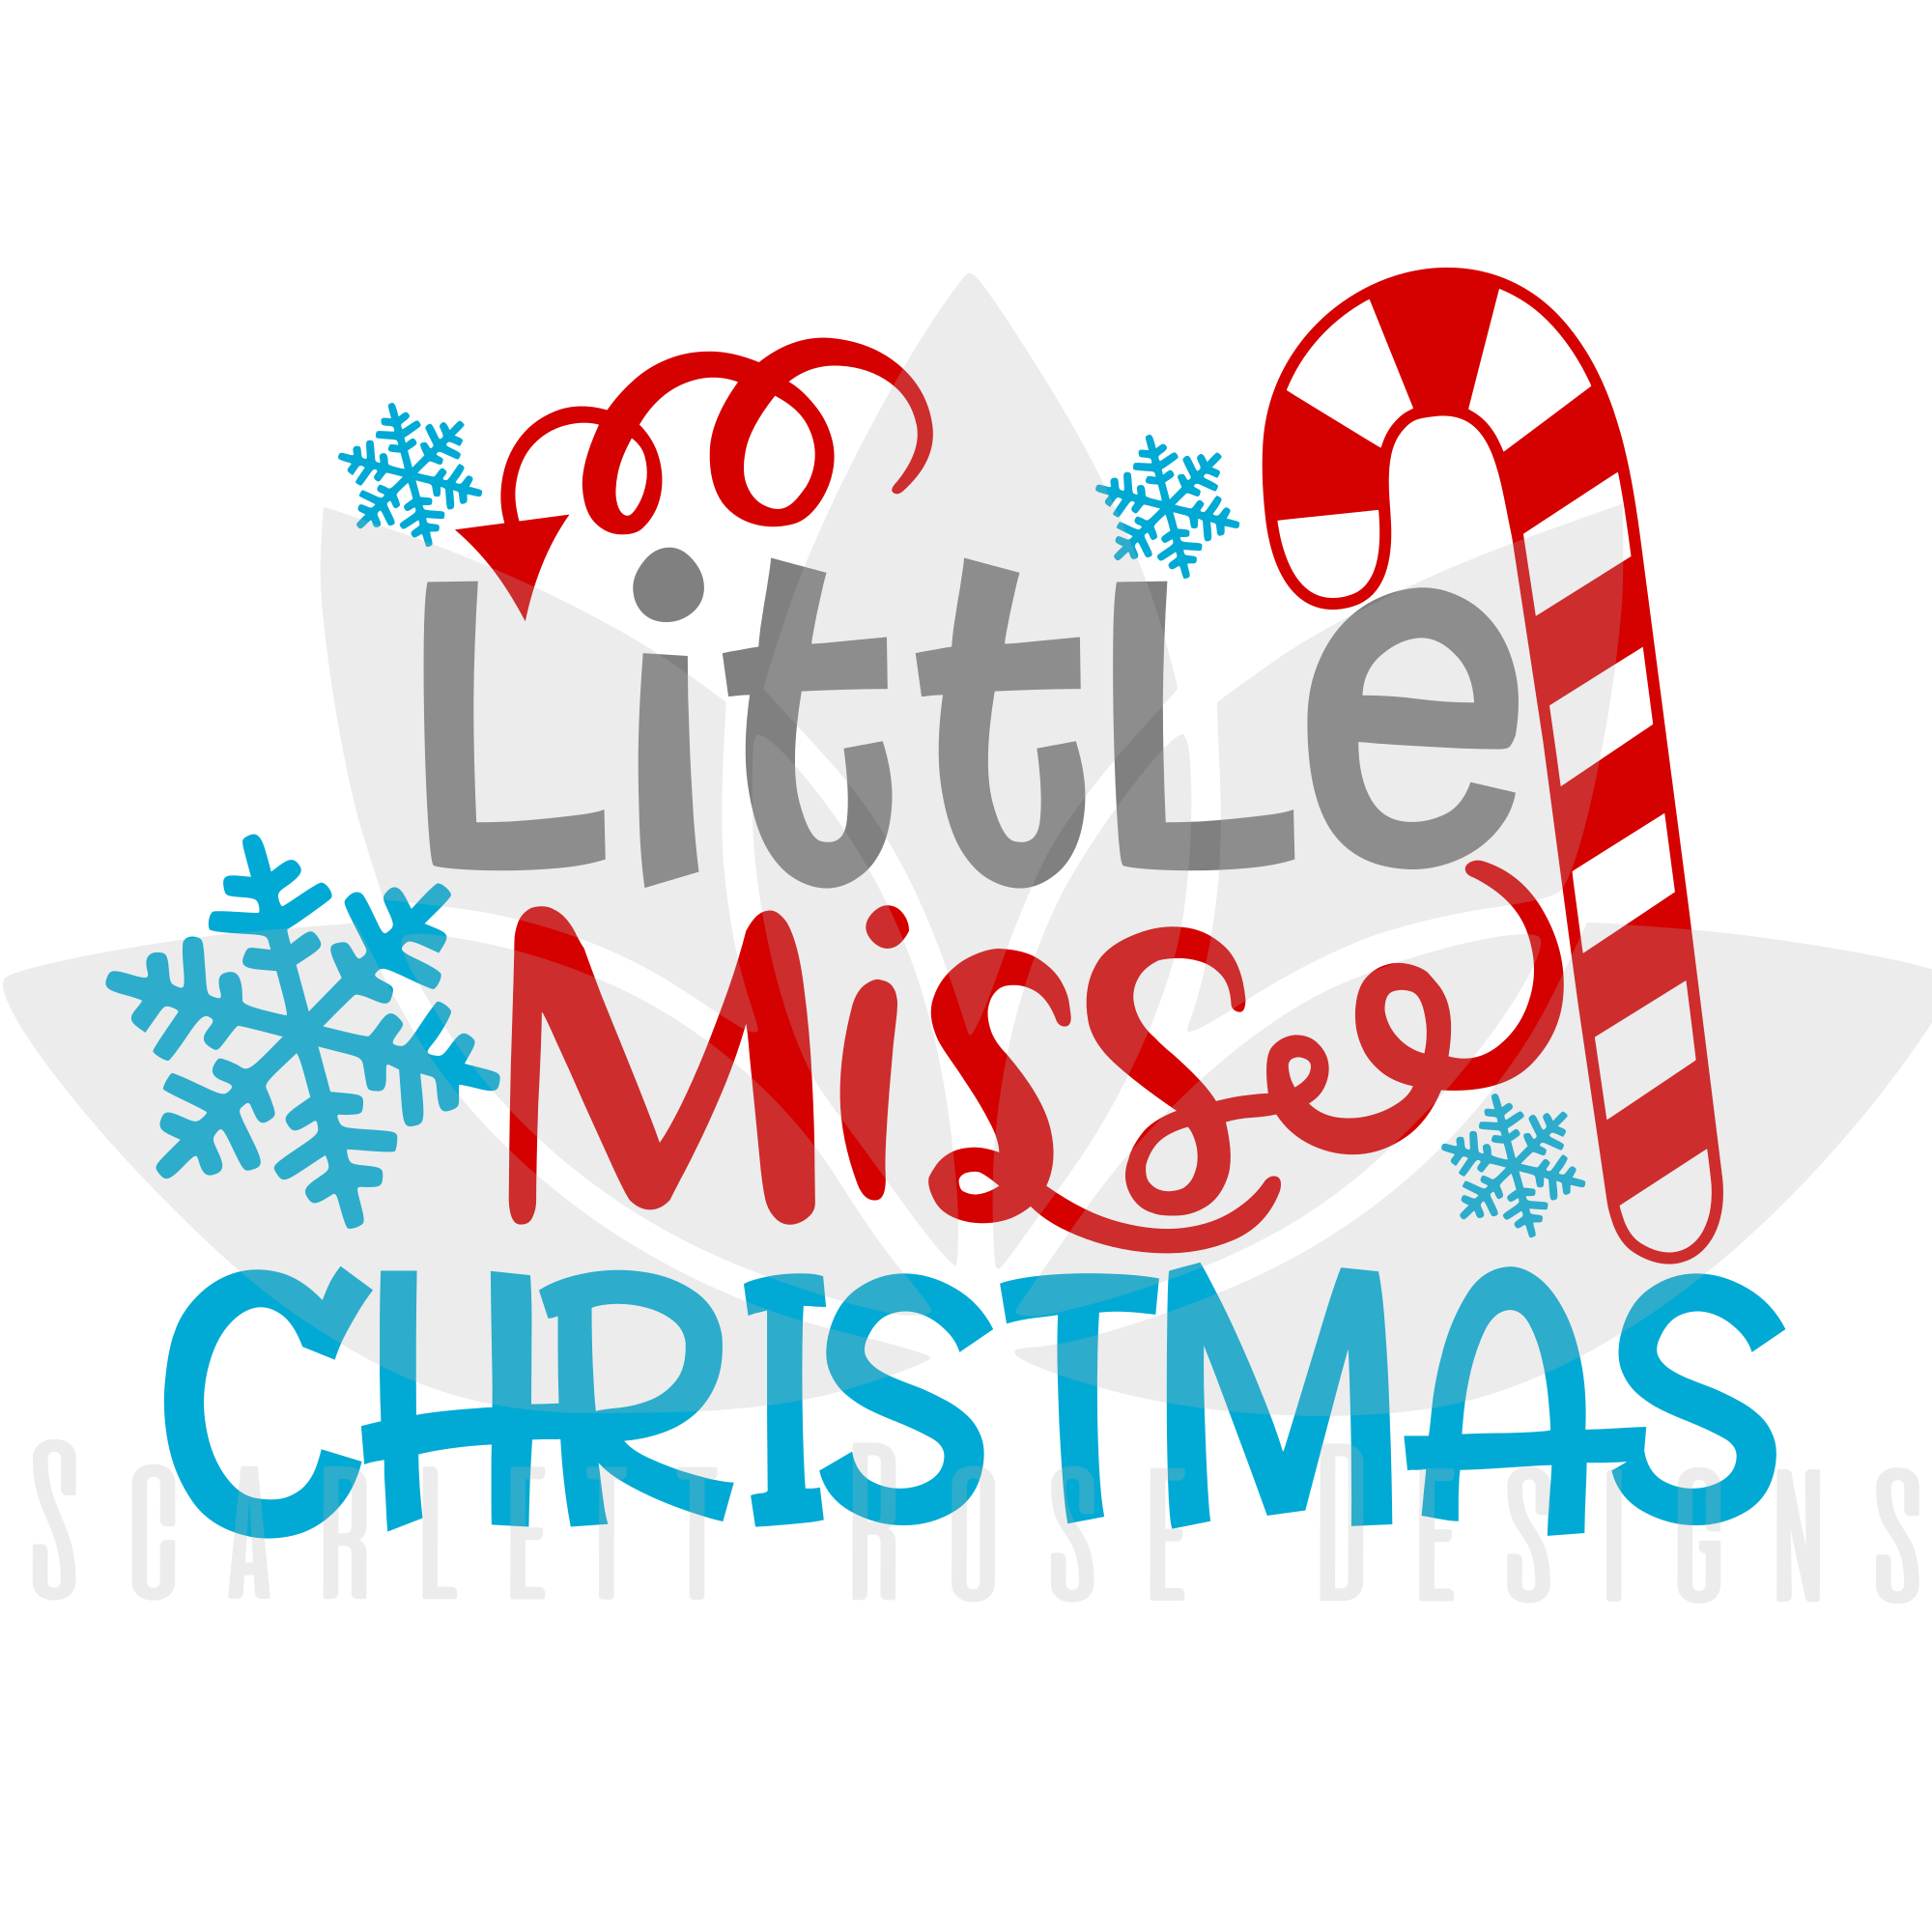 Christmas Svg Little Miss Christmas Candy Cane Scarlett Rose Designs